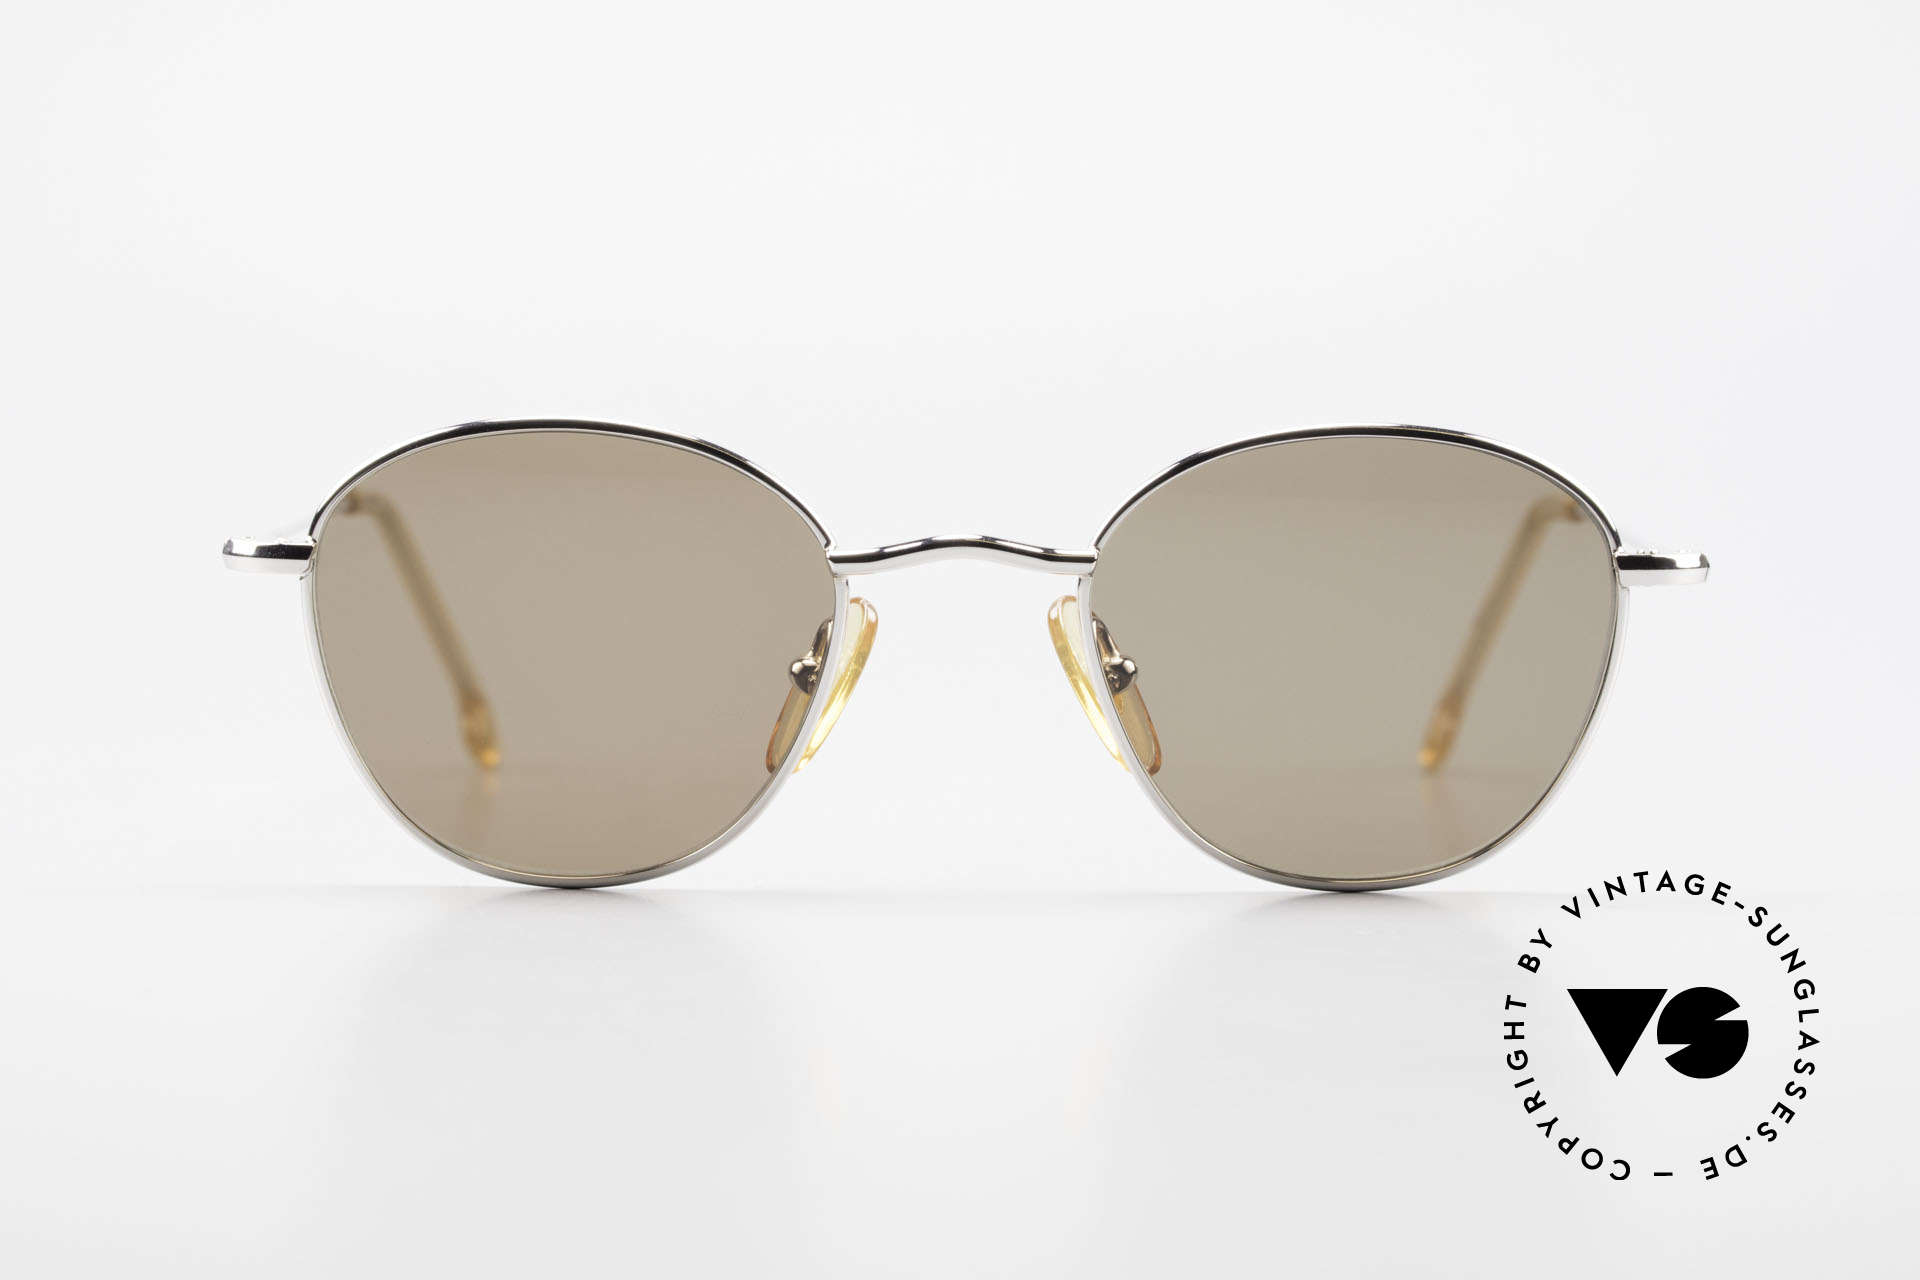 W Proksch's M8/1 90's Advantgarde Sunglasses, back then, produced by Wolfgang Proksch himself, Made for Men and Women